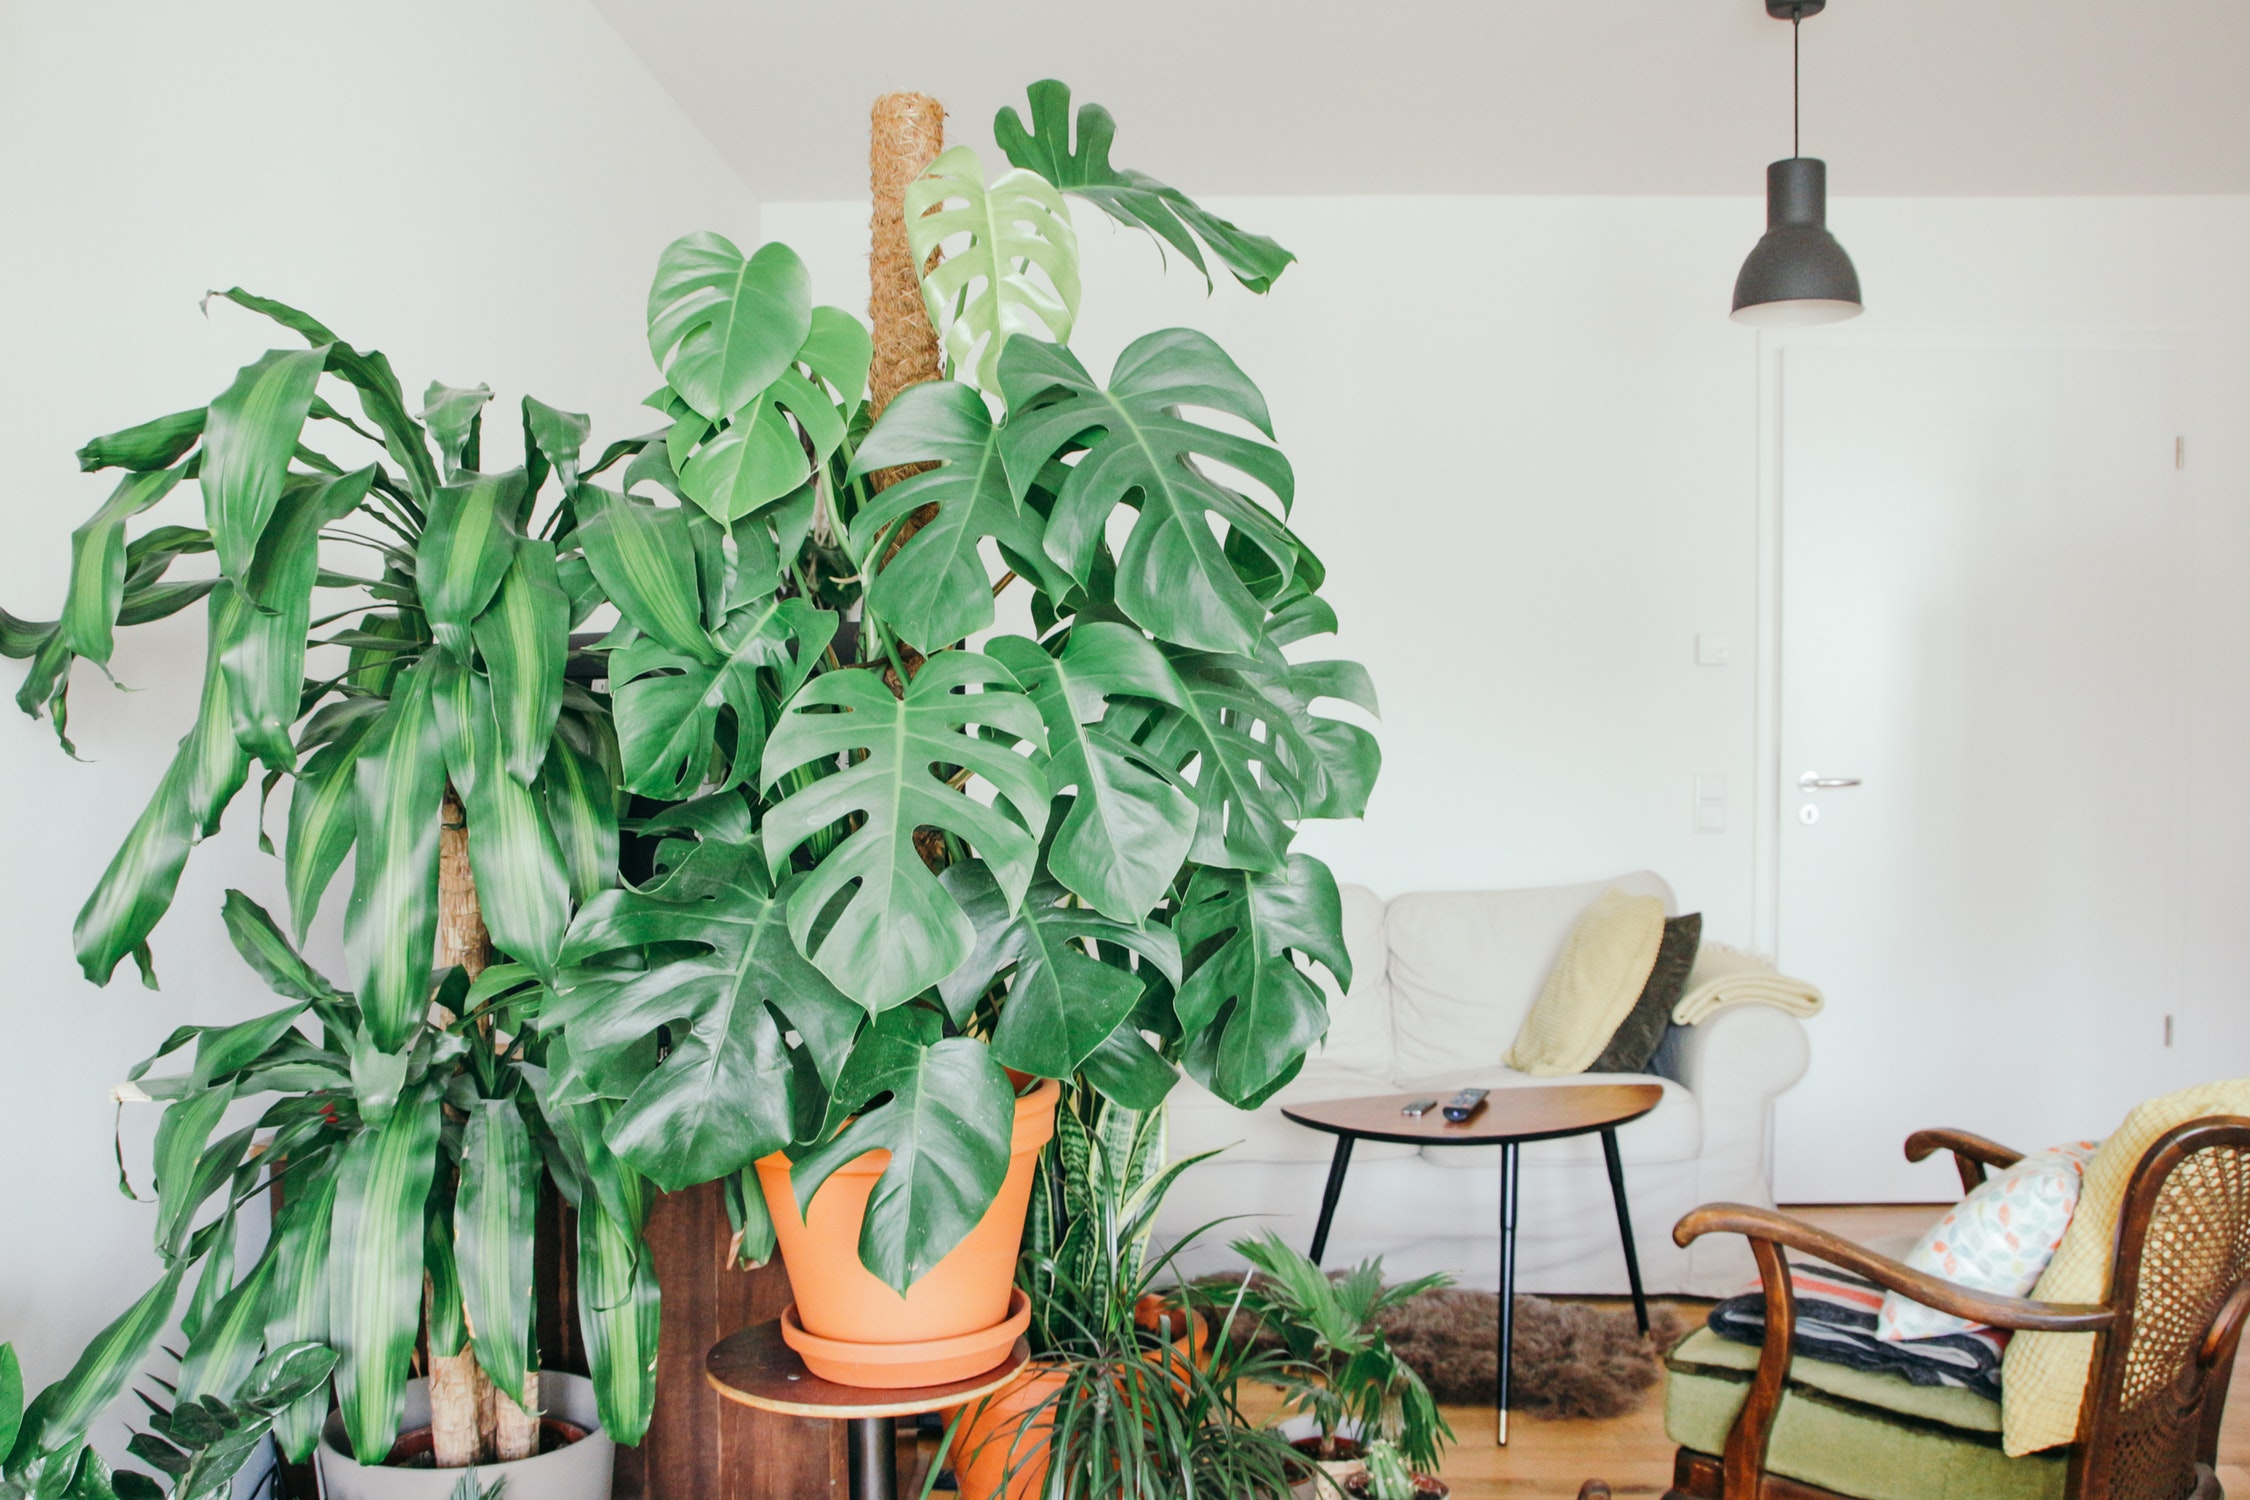 hot to take care of your houseplants